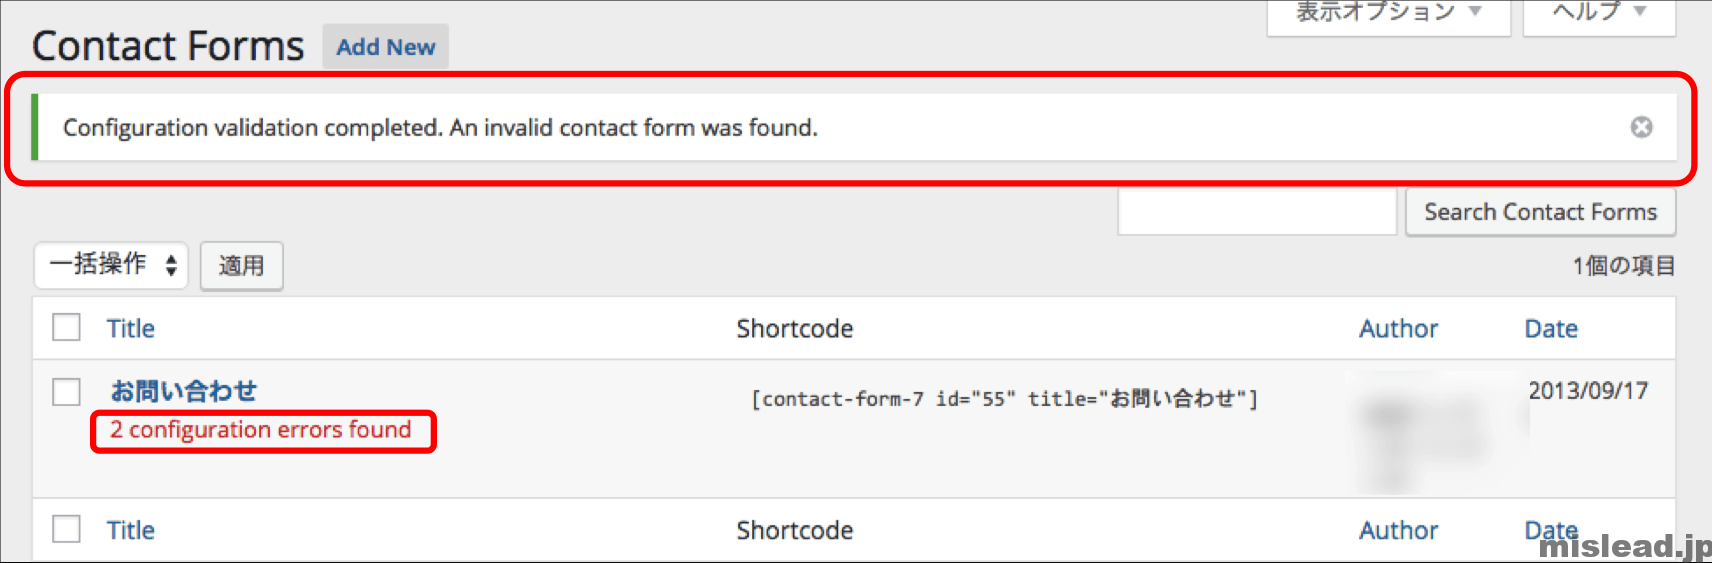 Configuration validation completed. An invalid contact form was found.